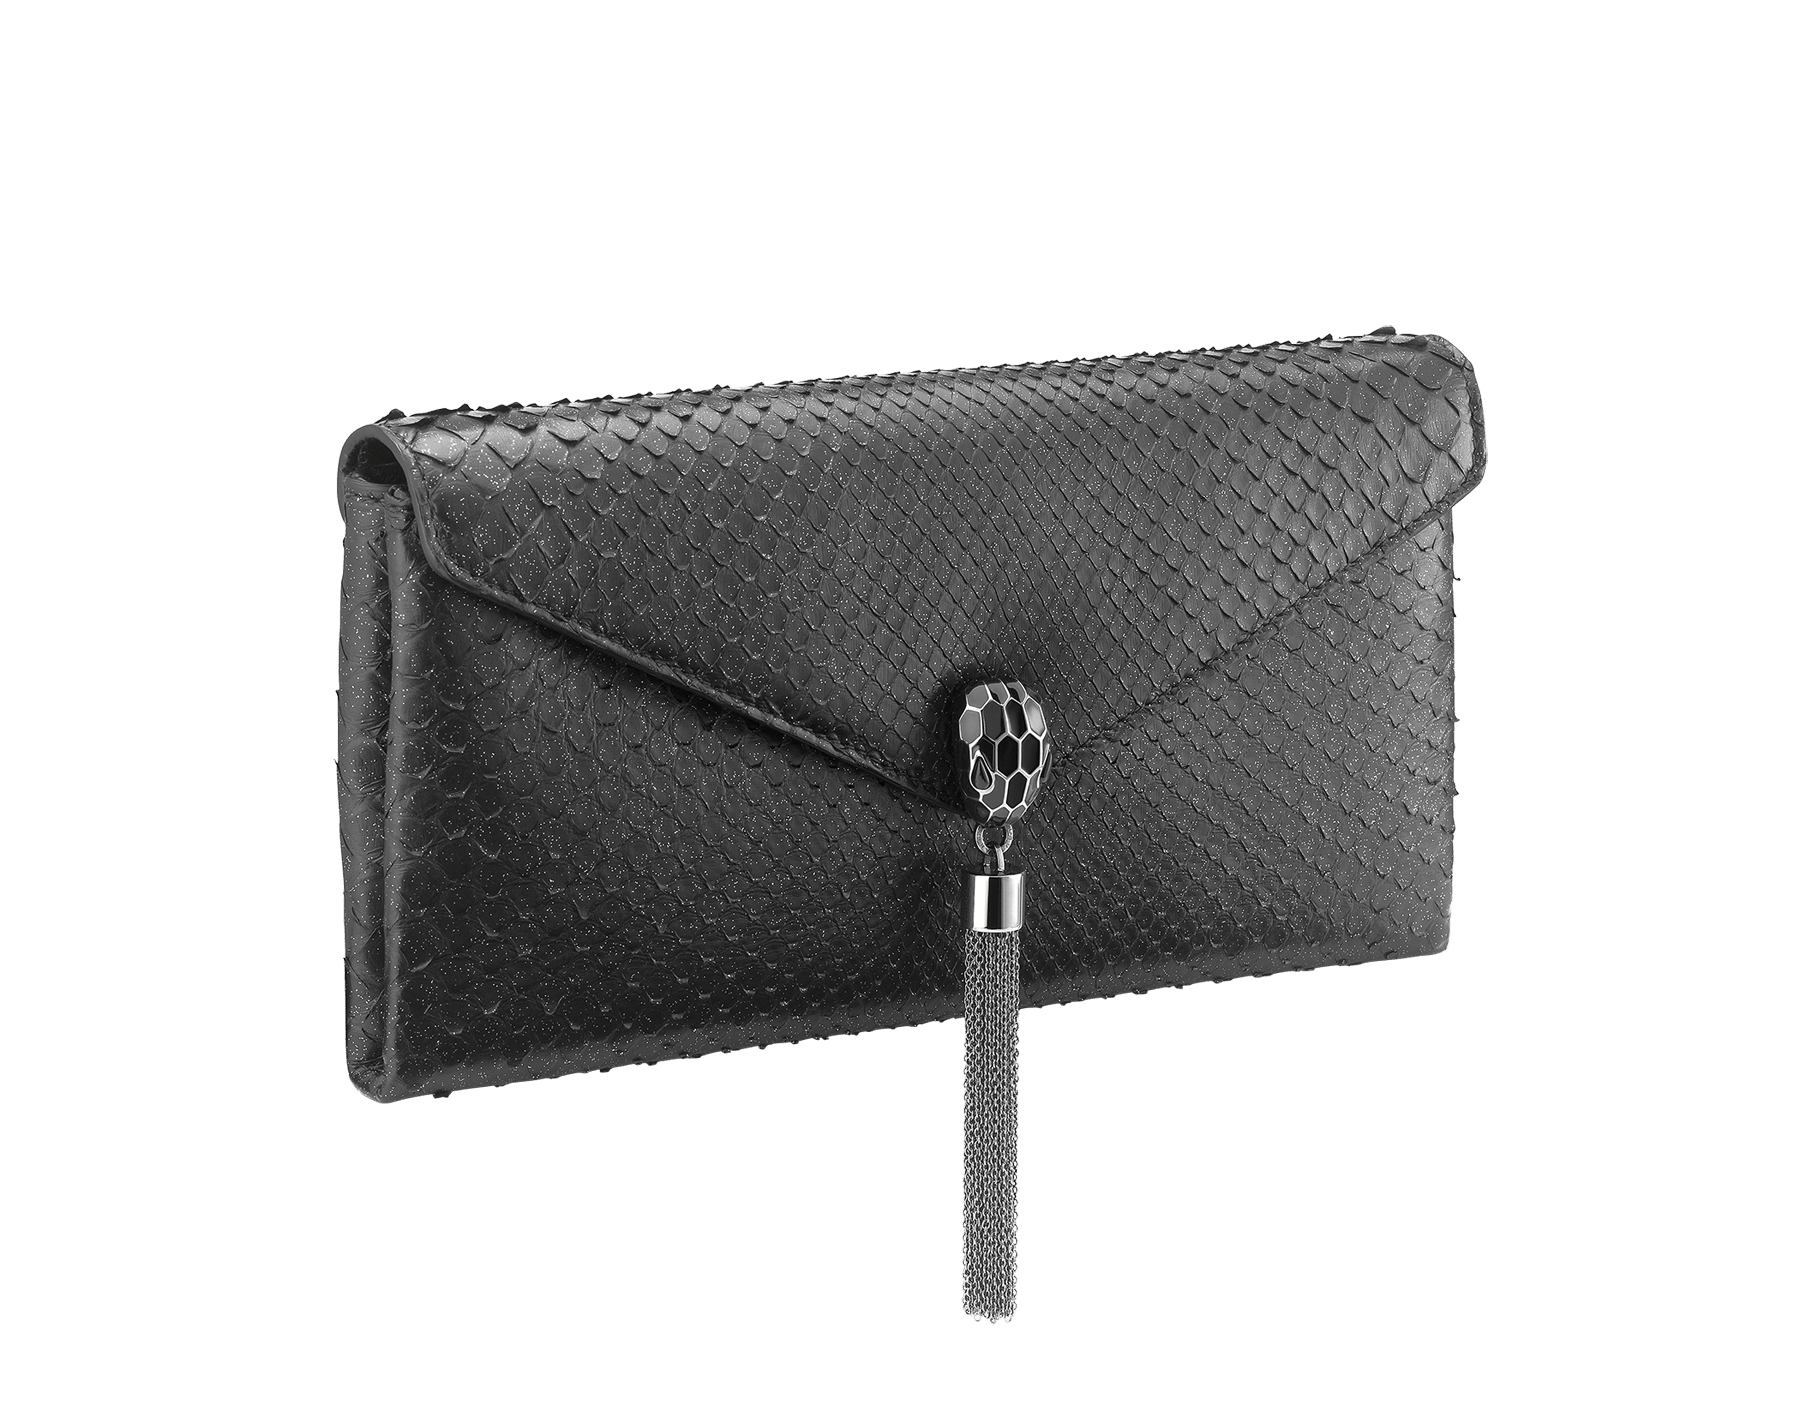 """""""Serpenti"""" evening clutch bag in black Diamond Glam python skin. Iconic snake head stud closure with tassel in dark ruthenium plated brass enriched with black shiny enamel and black onyx eyes. 289041 image 2"""